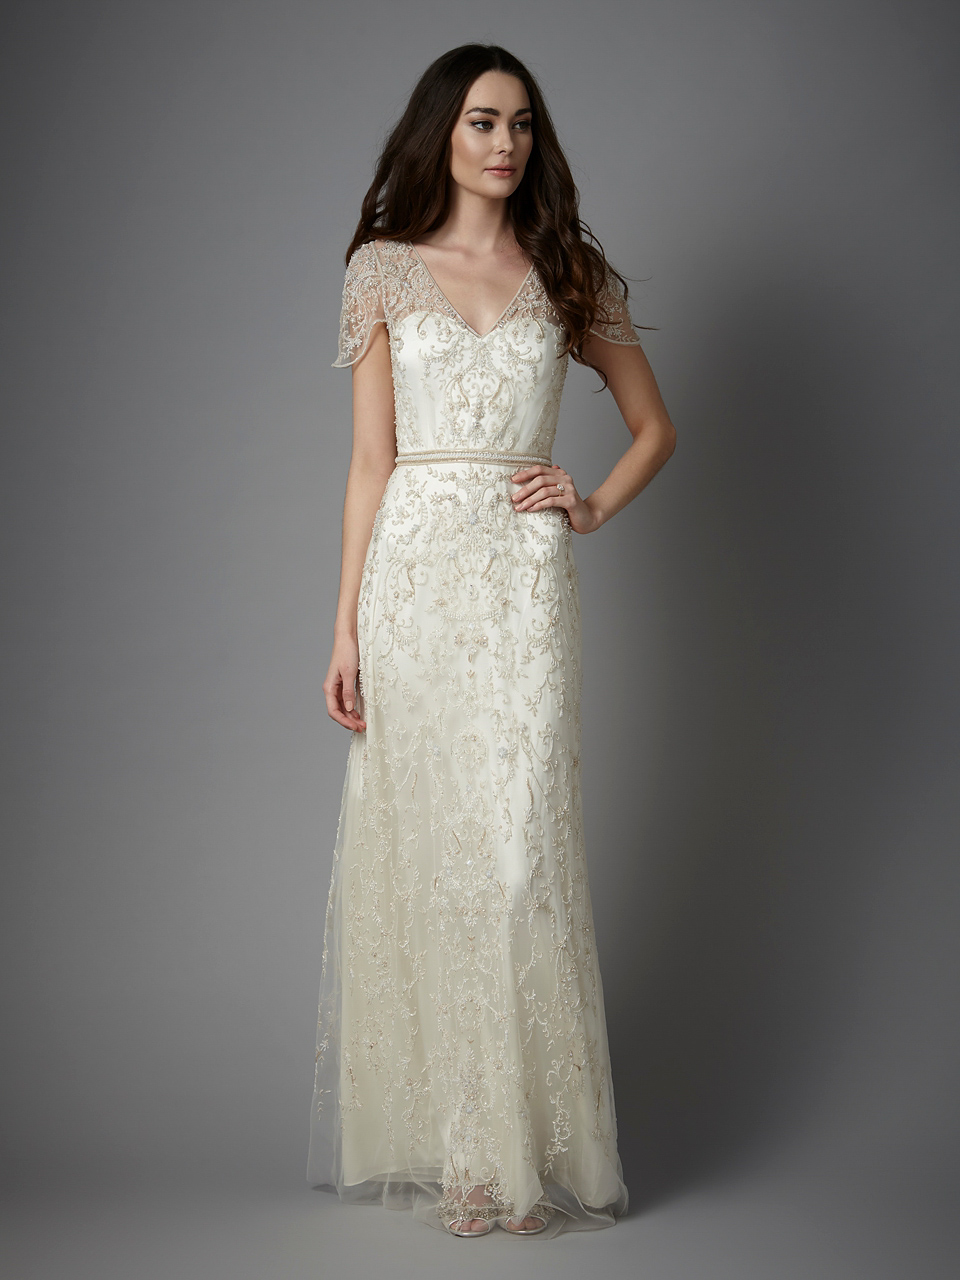 Cathrine Deane - Uniquely Feminine, Luxury Wedding Dresses (Bridal Fashion Fashion & Beauty Get Inspired Supplier Spotlight )